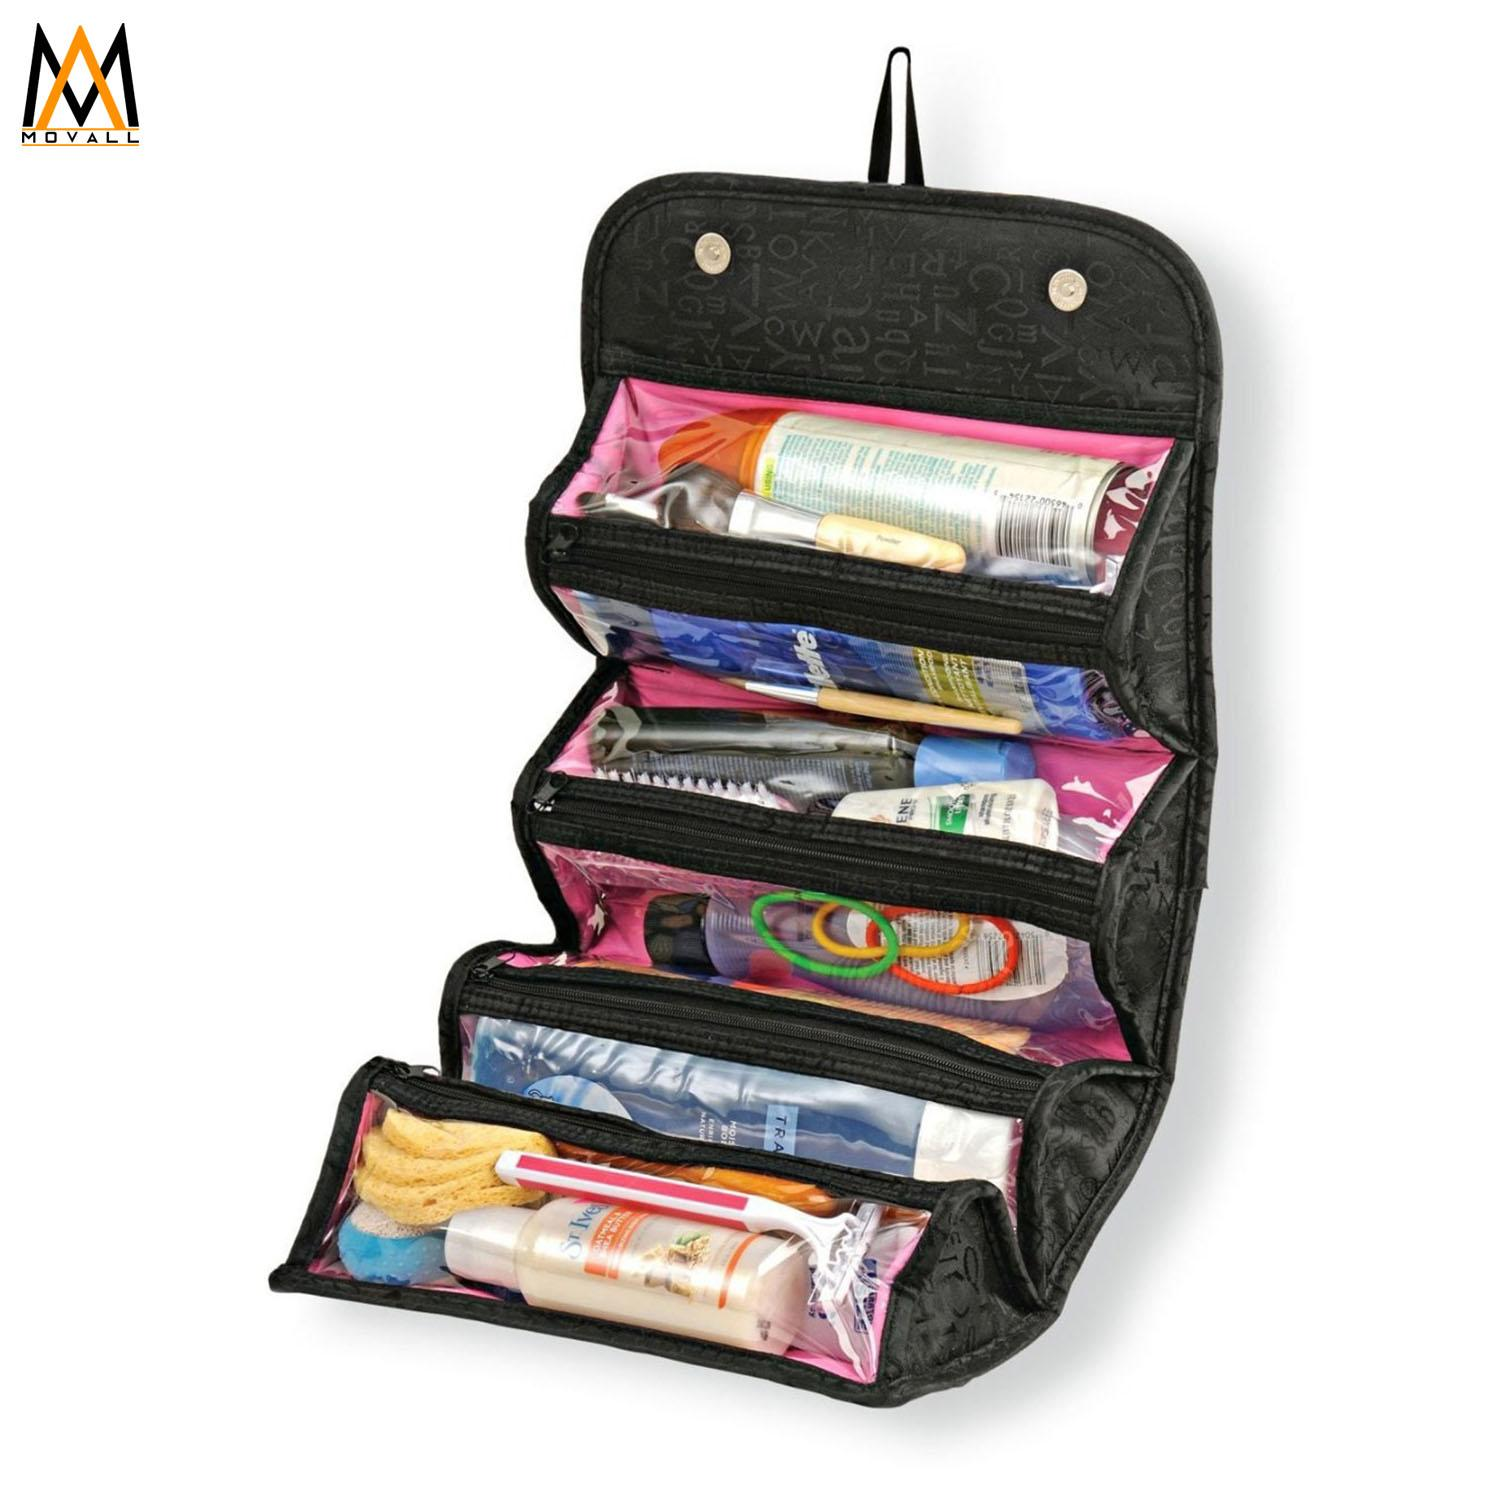 Roll and Go Cosmetic Bag Organizer Philippines